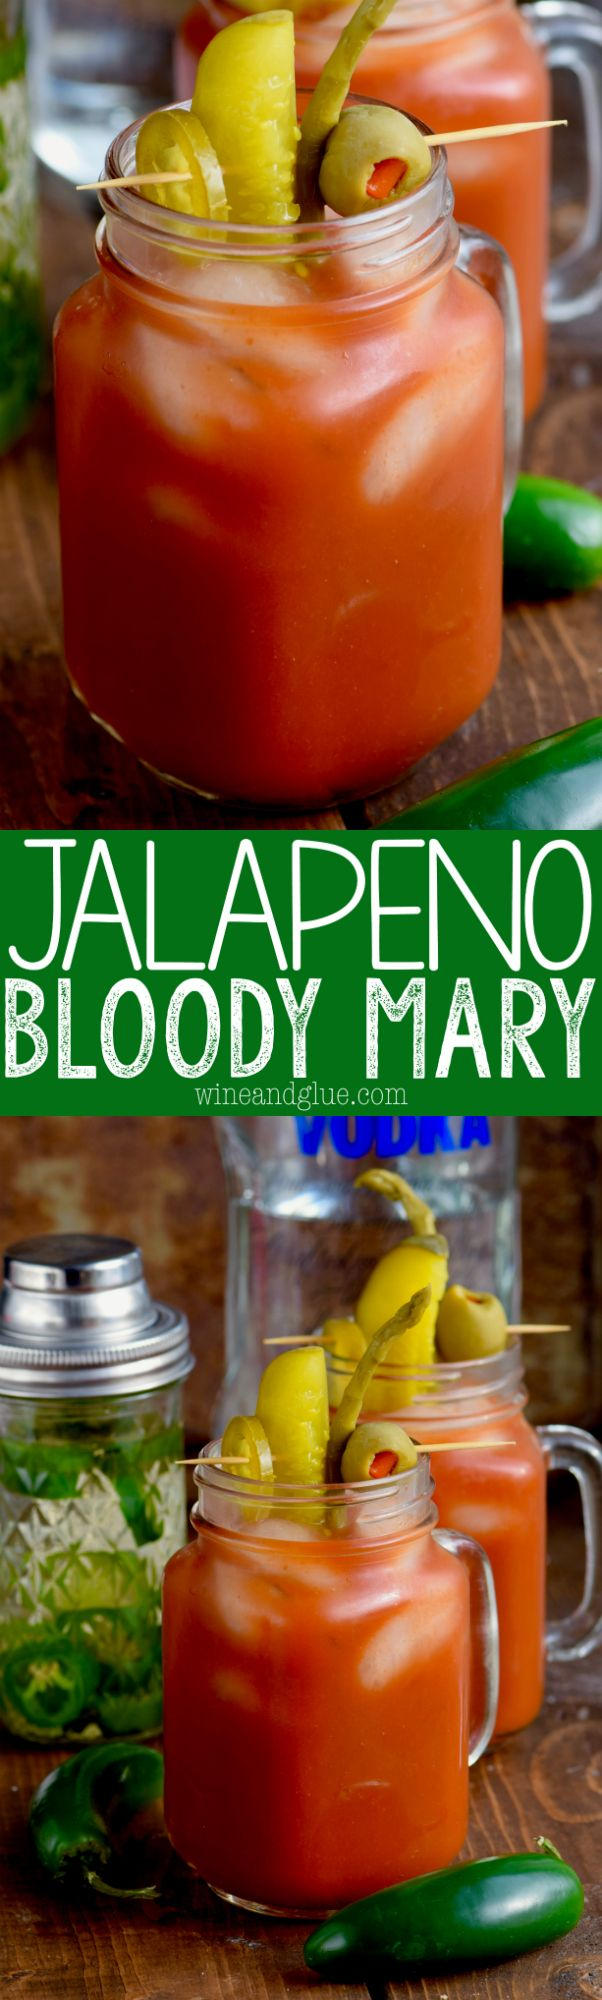 Jalapeño Infused Bloody Mary | The delicious smoky flavor of jalapeños in vodka makes this bloody mary recipe a must make for any brunch!: